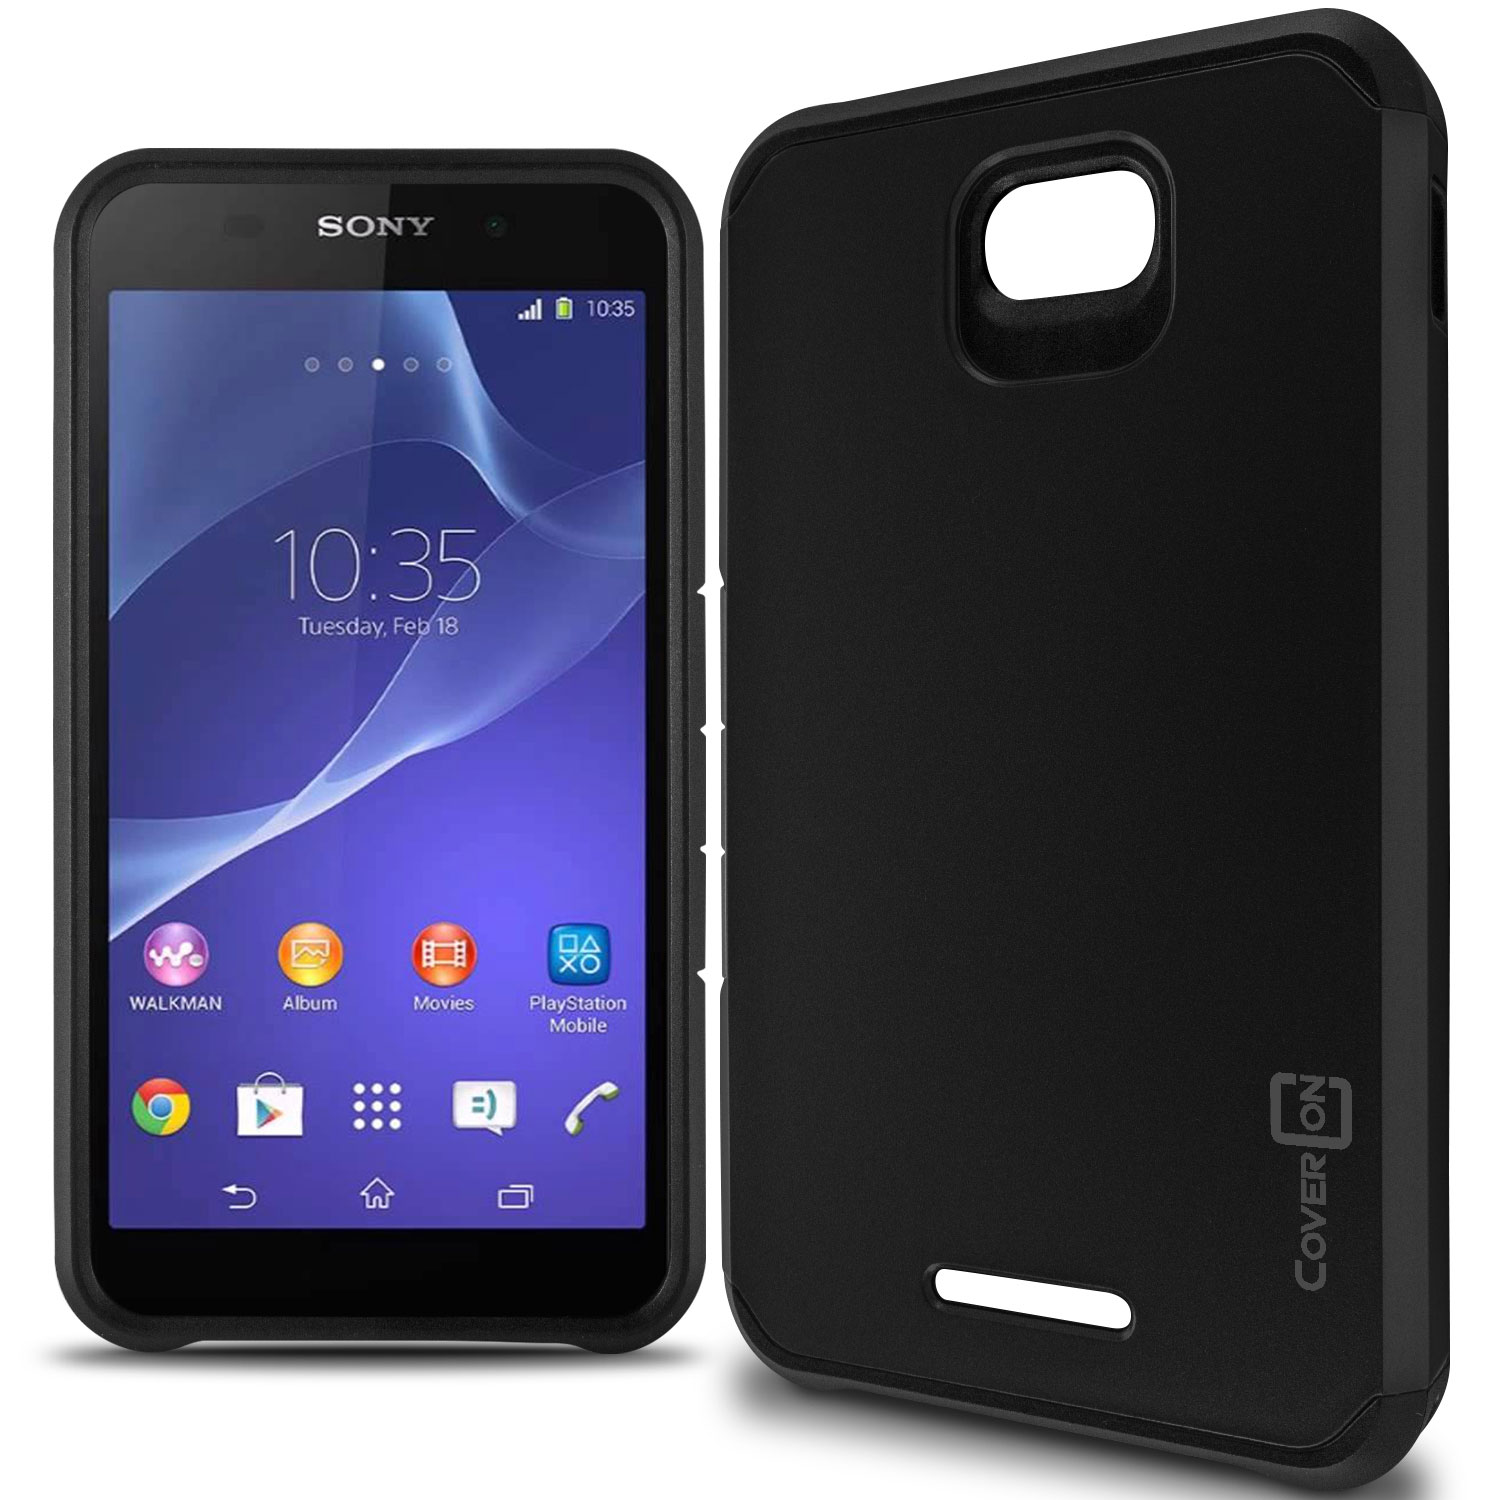 Black Hybrid Dual Layer Rugged Case specifically designed for the Sony Xperia E4 Great bination of style protection